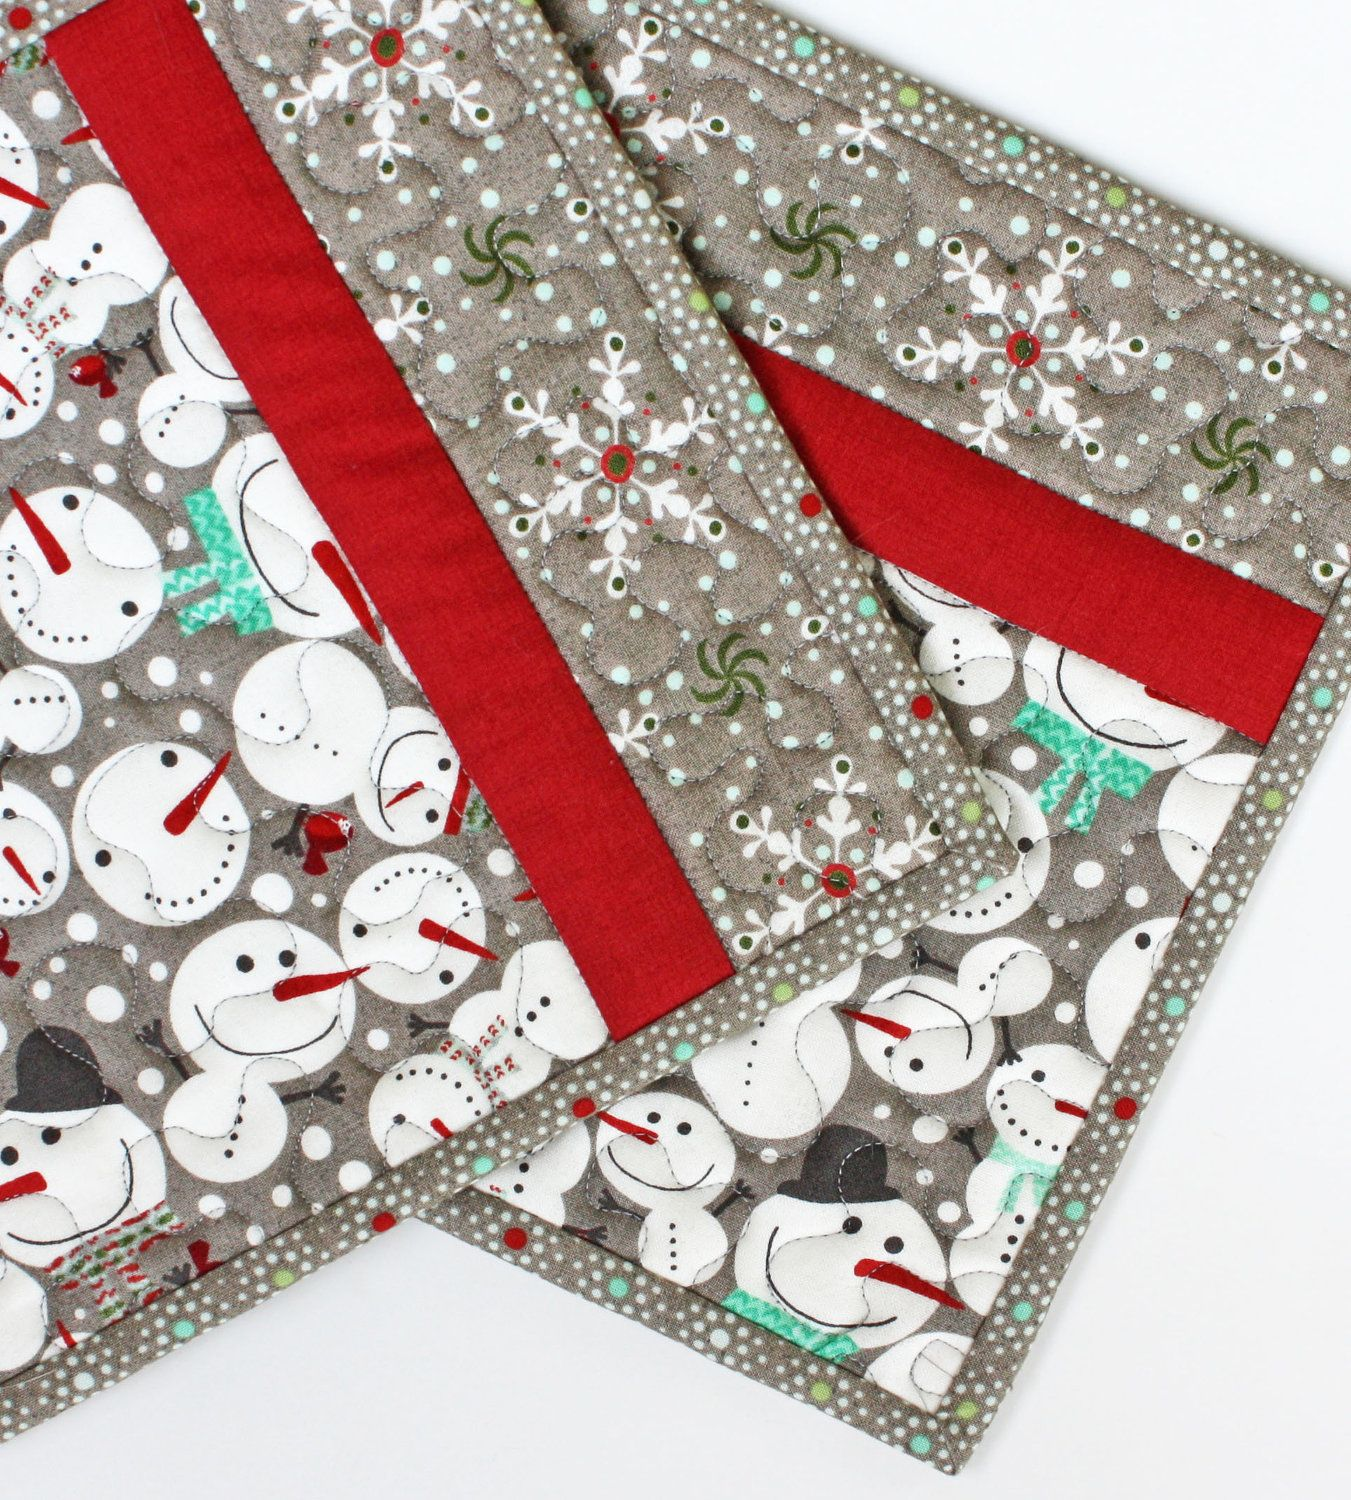 Winter Wonderland Handmade Quilted Potholders By Themjcollection 19 50 Christmas Quilts Quilted Potholders Pot Holders